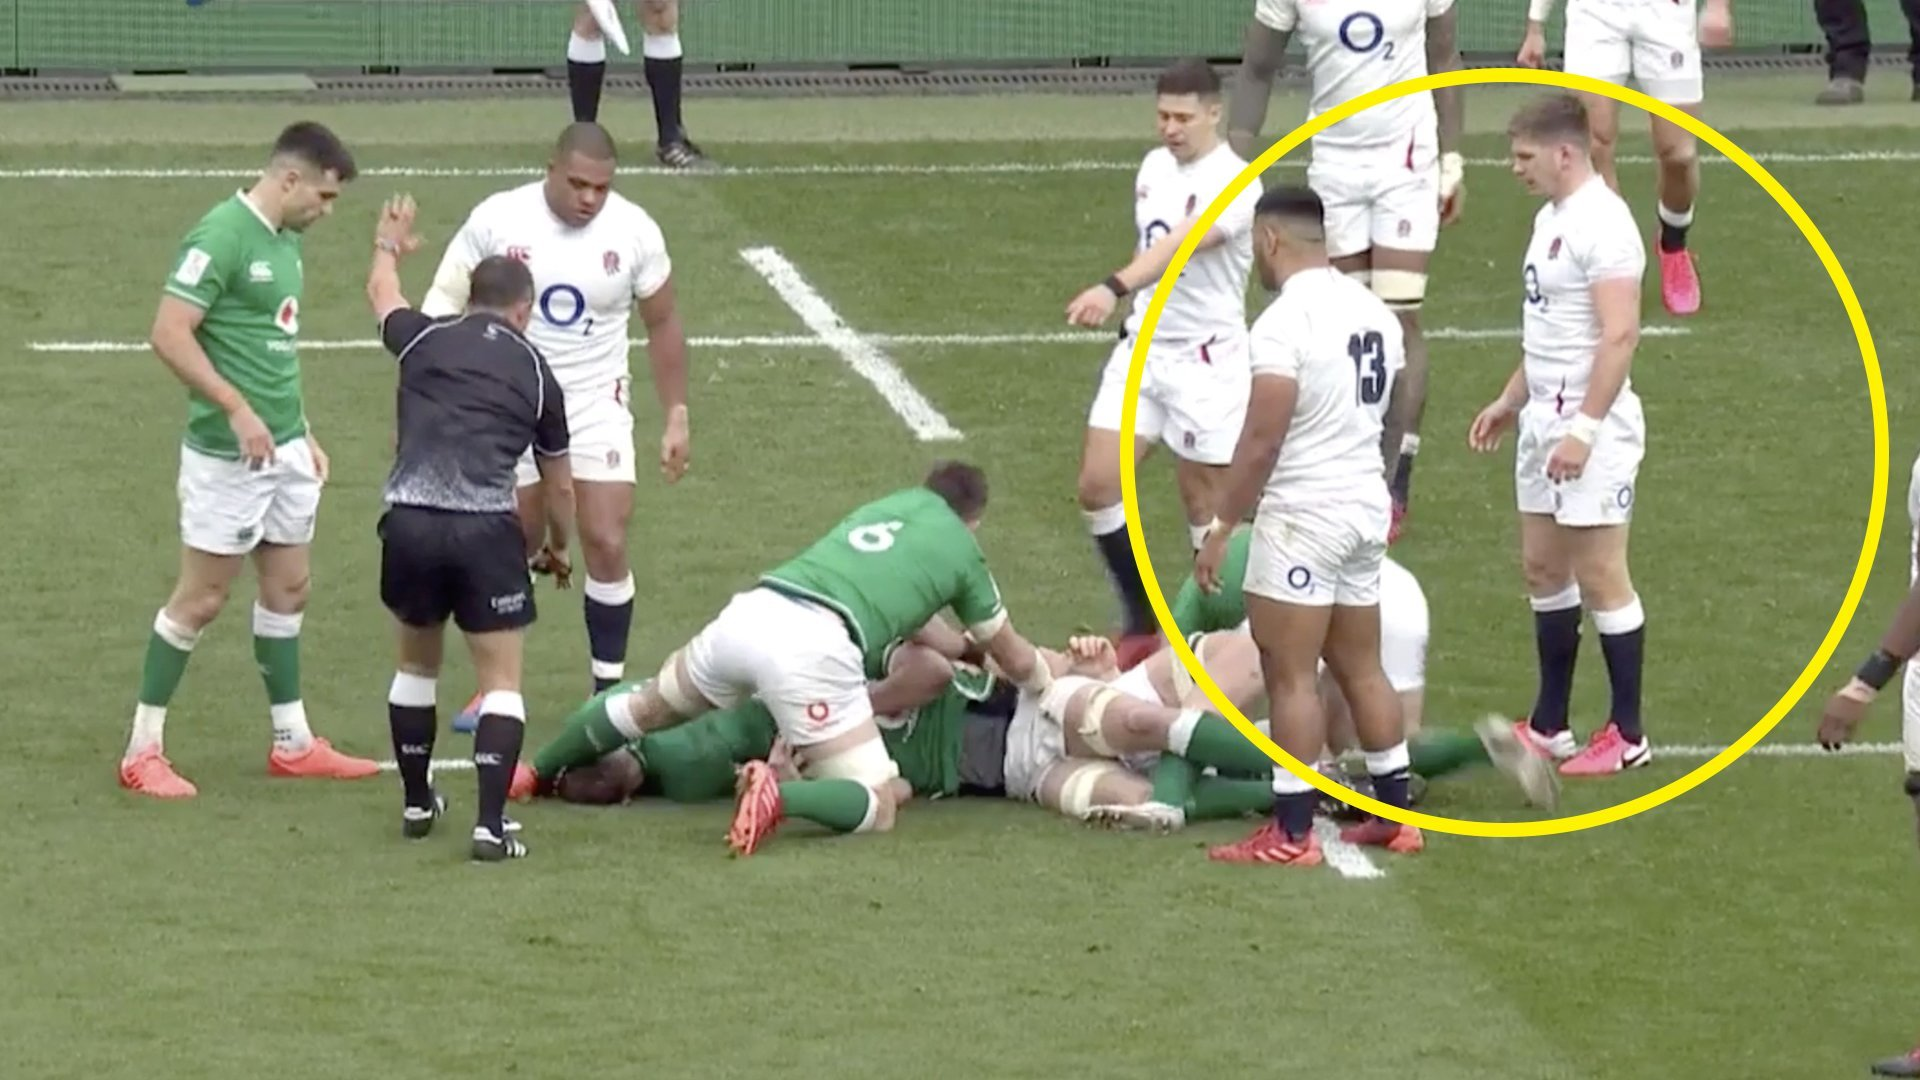 Owen Farrell's reaction when he saw Larmour injured tells you everything about what he's really like